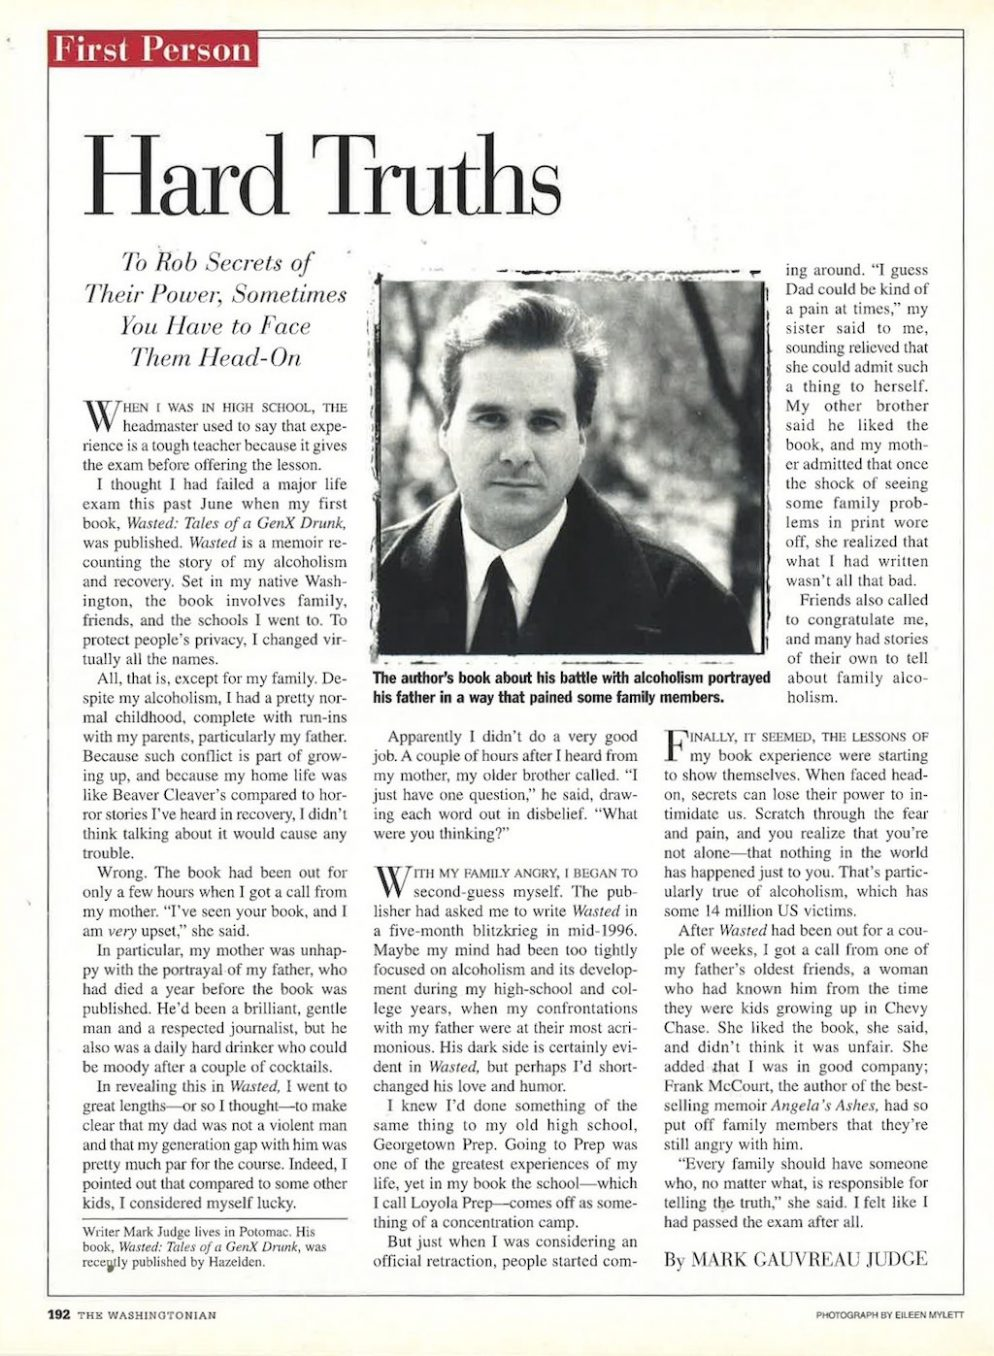 Kavanaugh's Character Witness Once Wrote About His Family